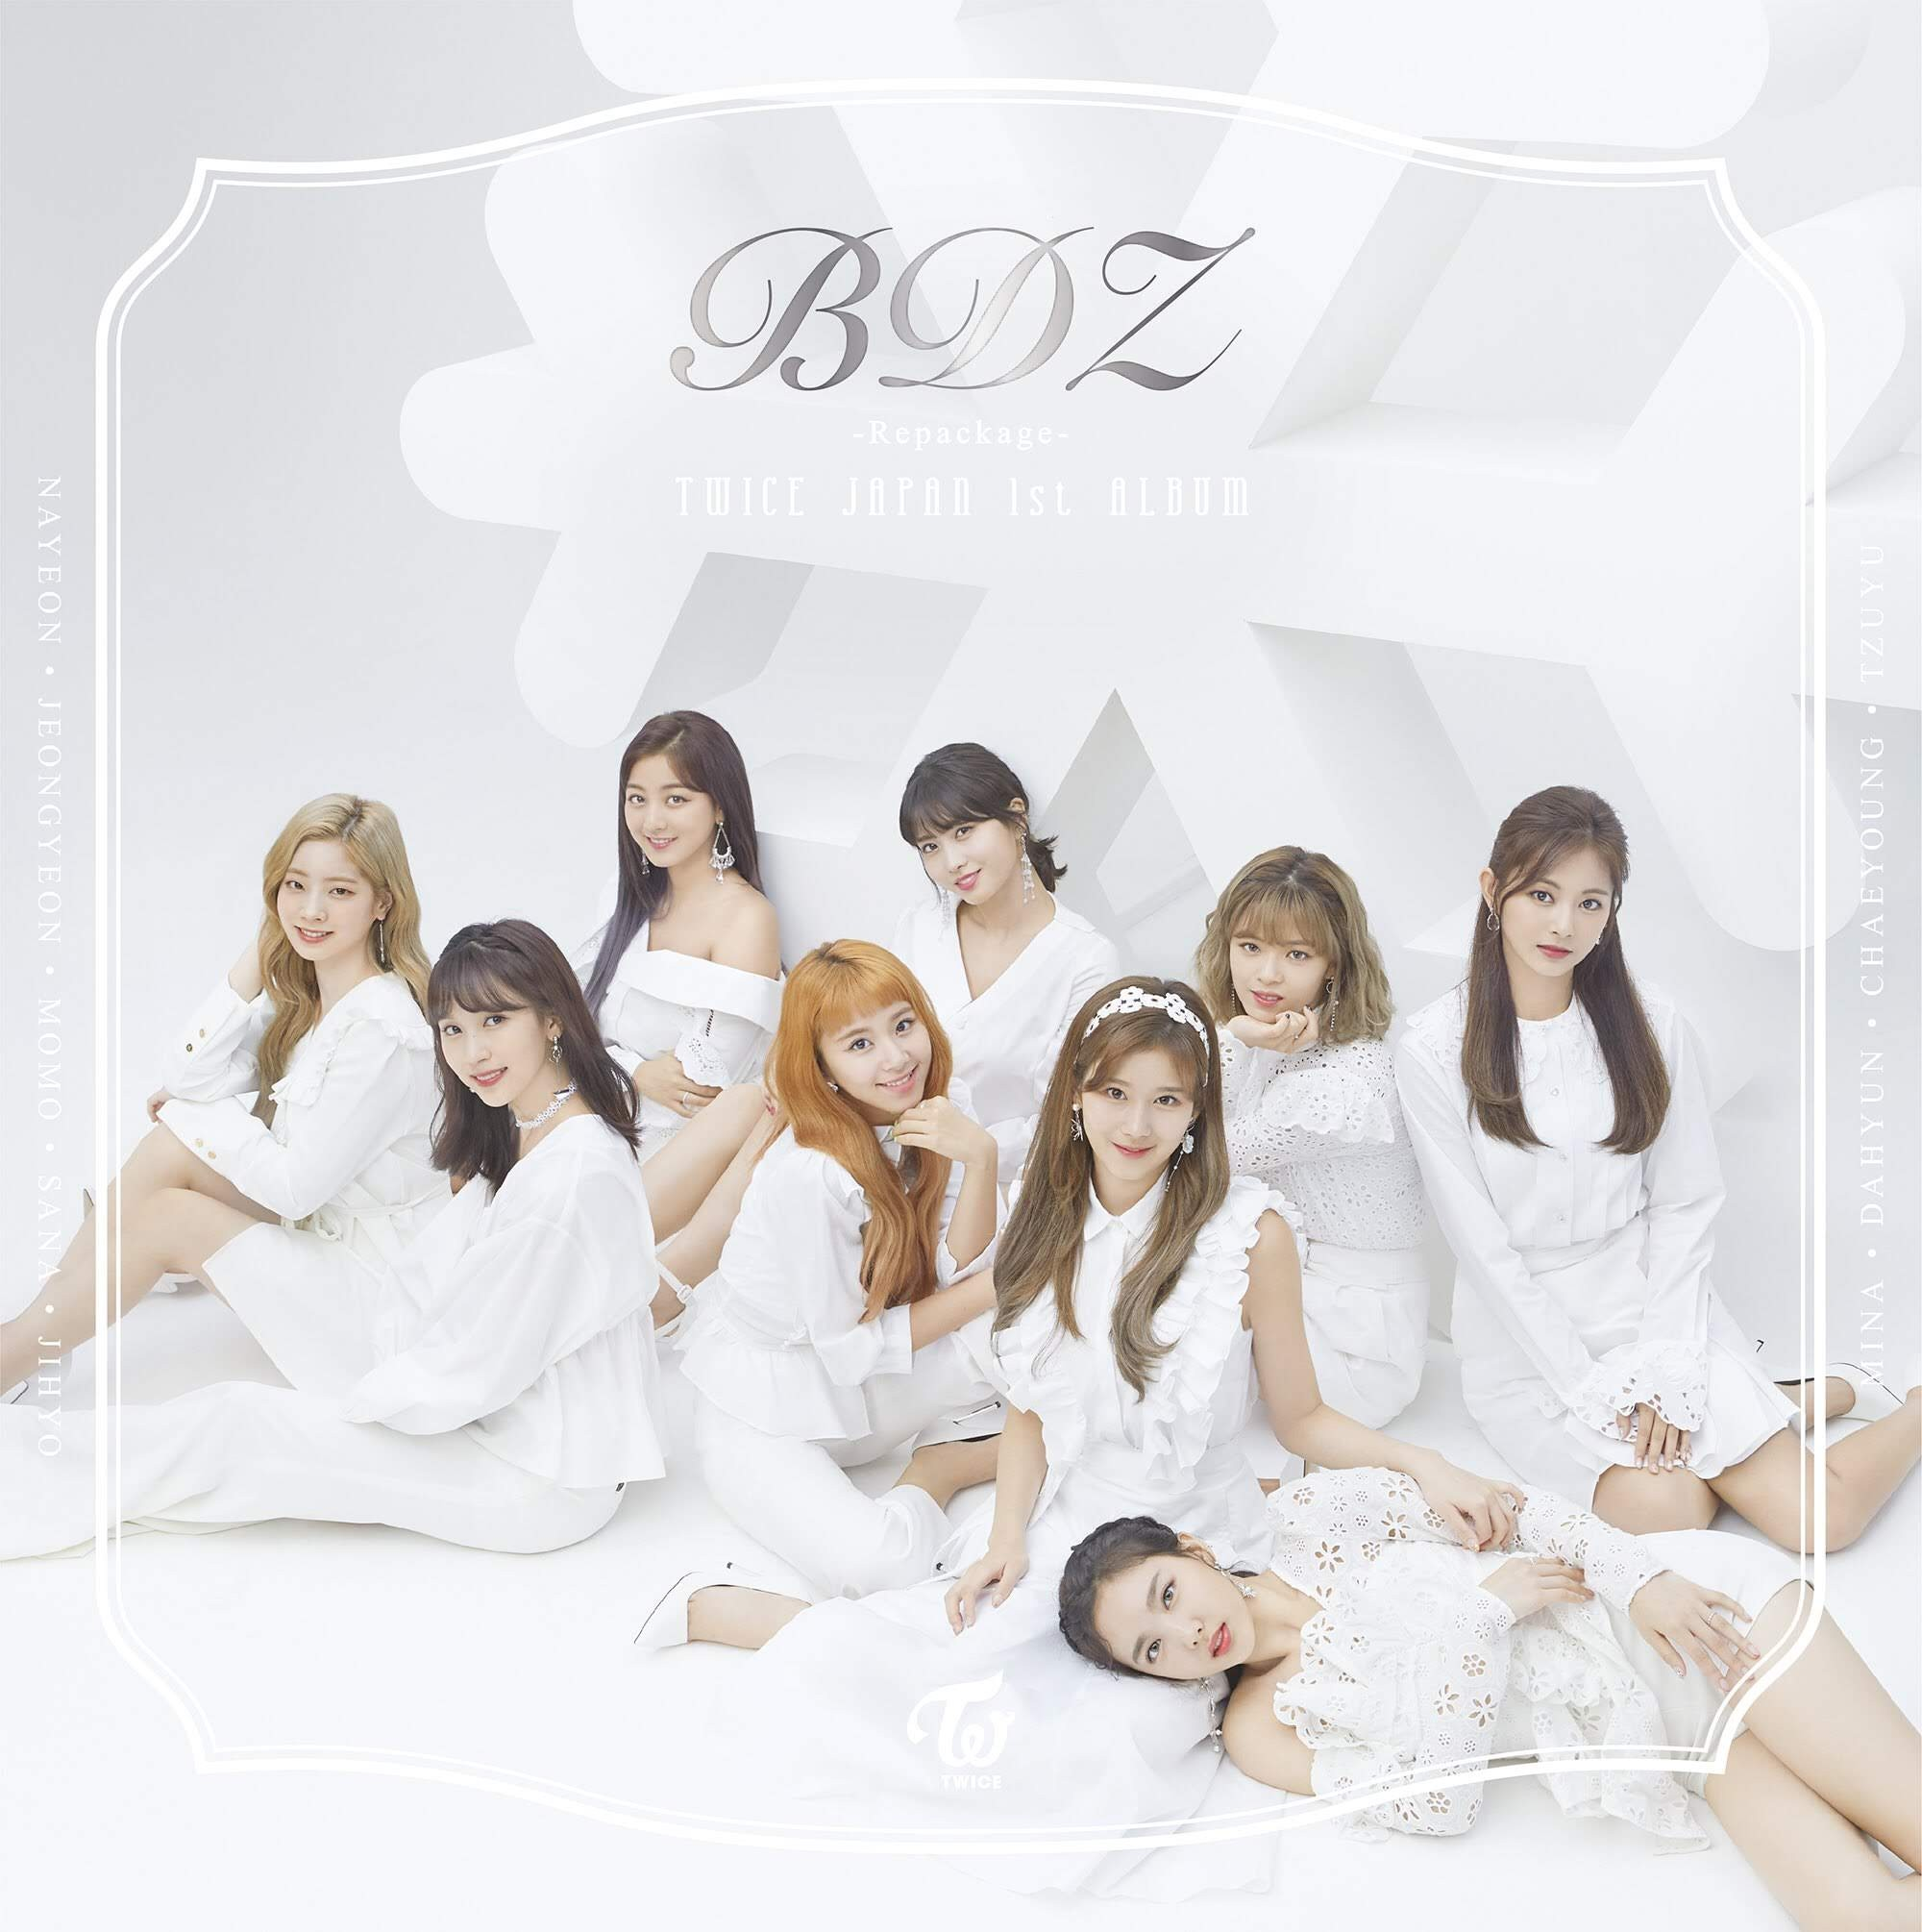 TWICE (트와이스) – BDZ -Repackage- [FLAC + MP3 320 + DVD ISO] [2018.12.26]